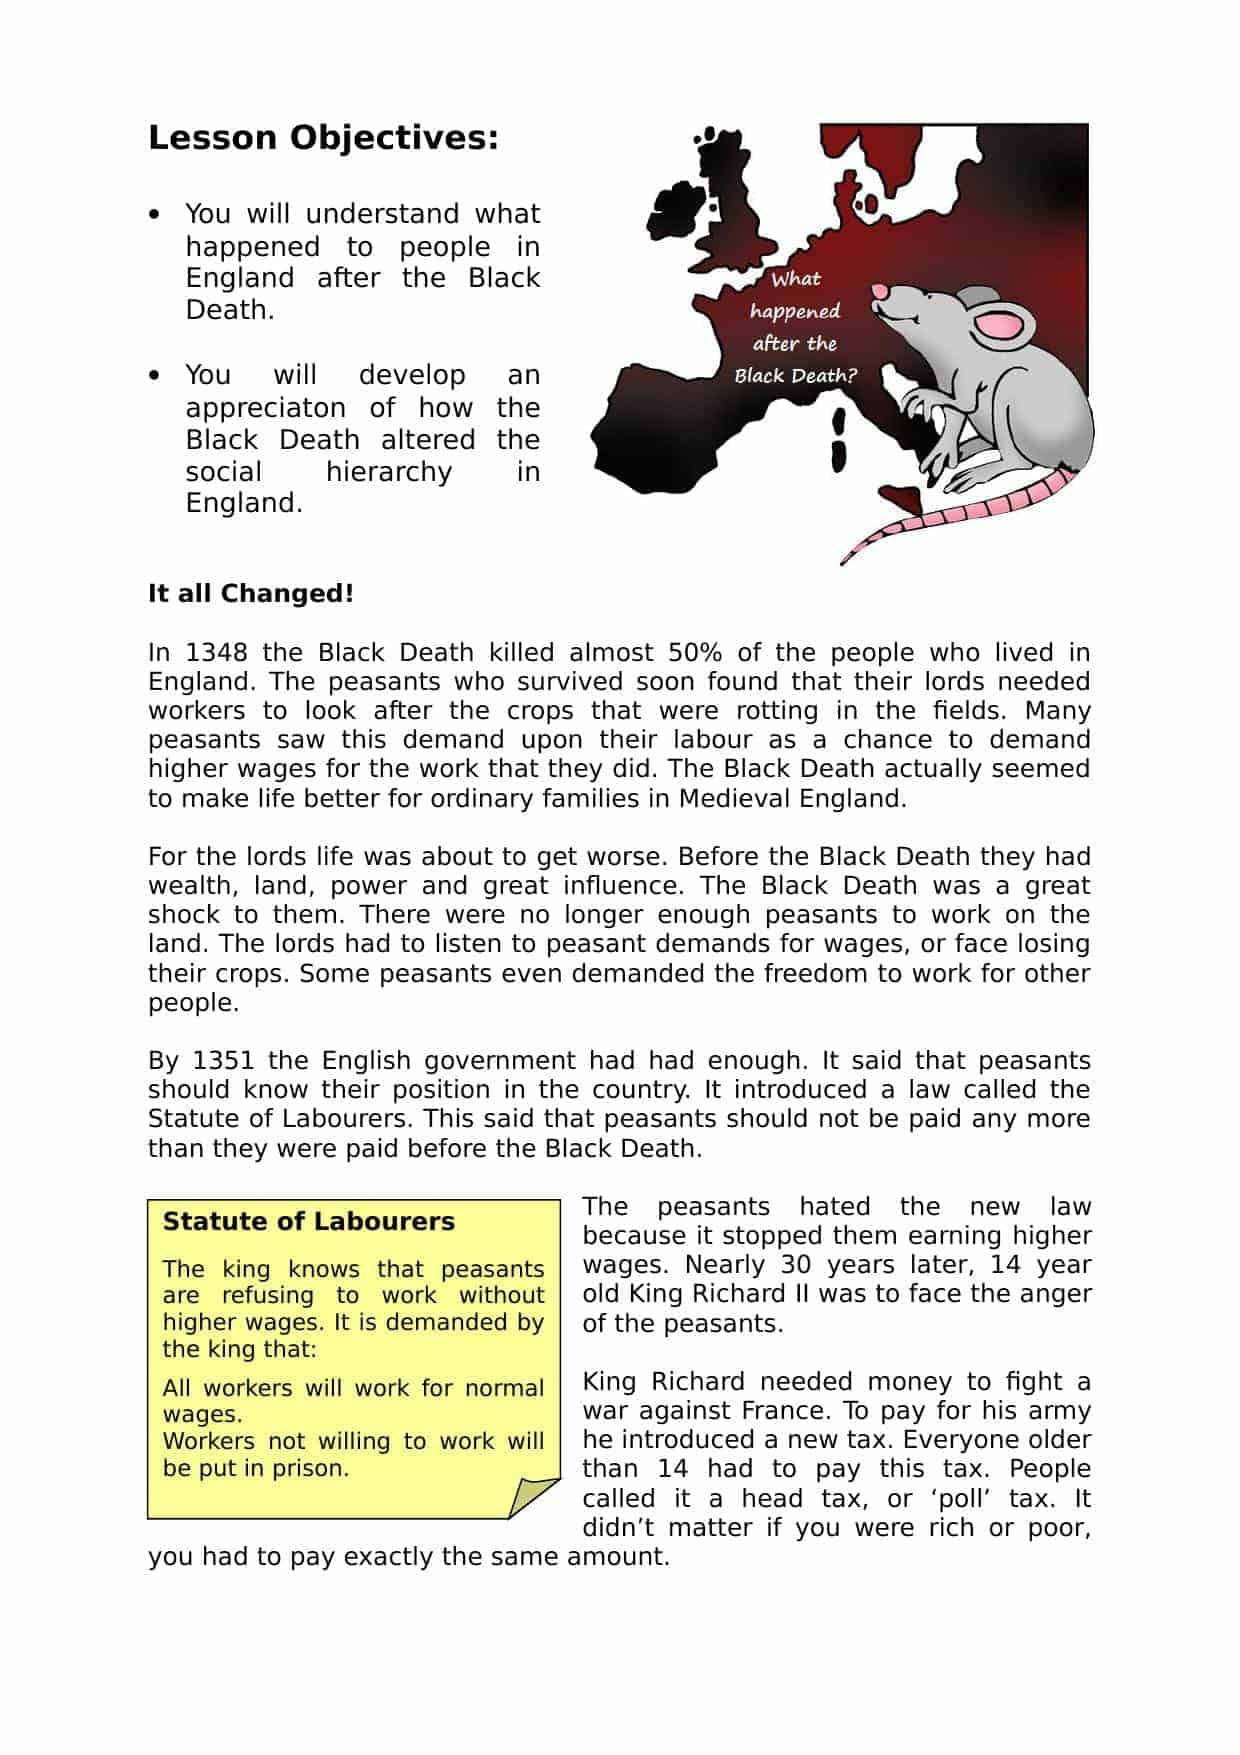 What Happened after the Black Death | KS3 Lesson Plan Resource